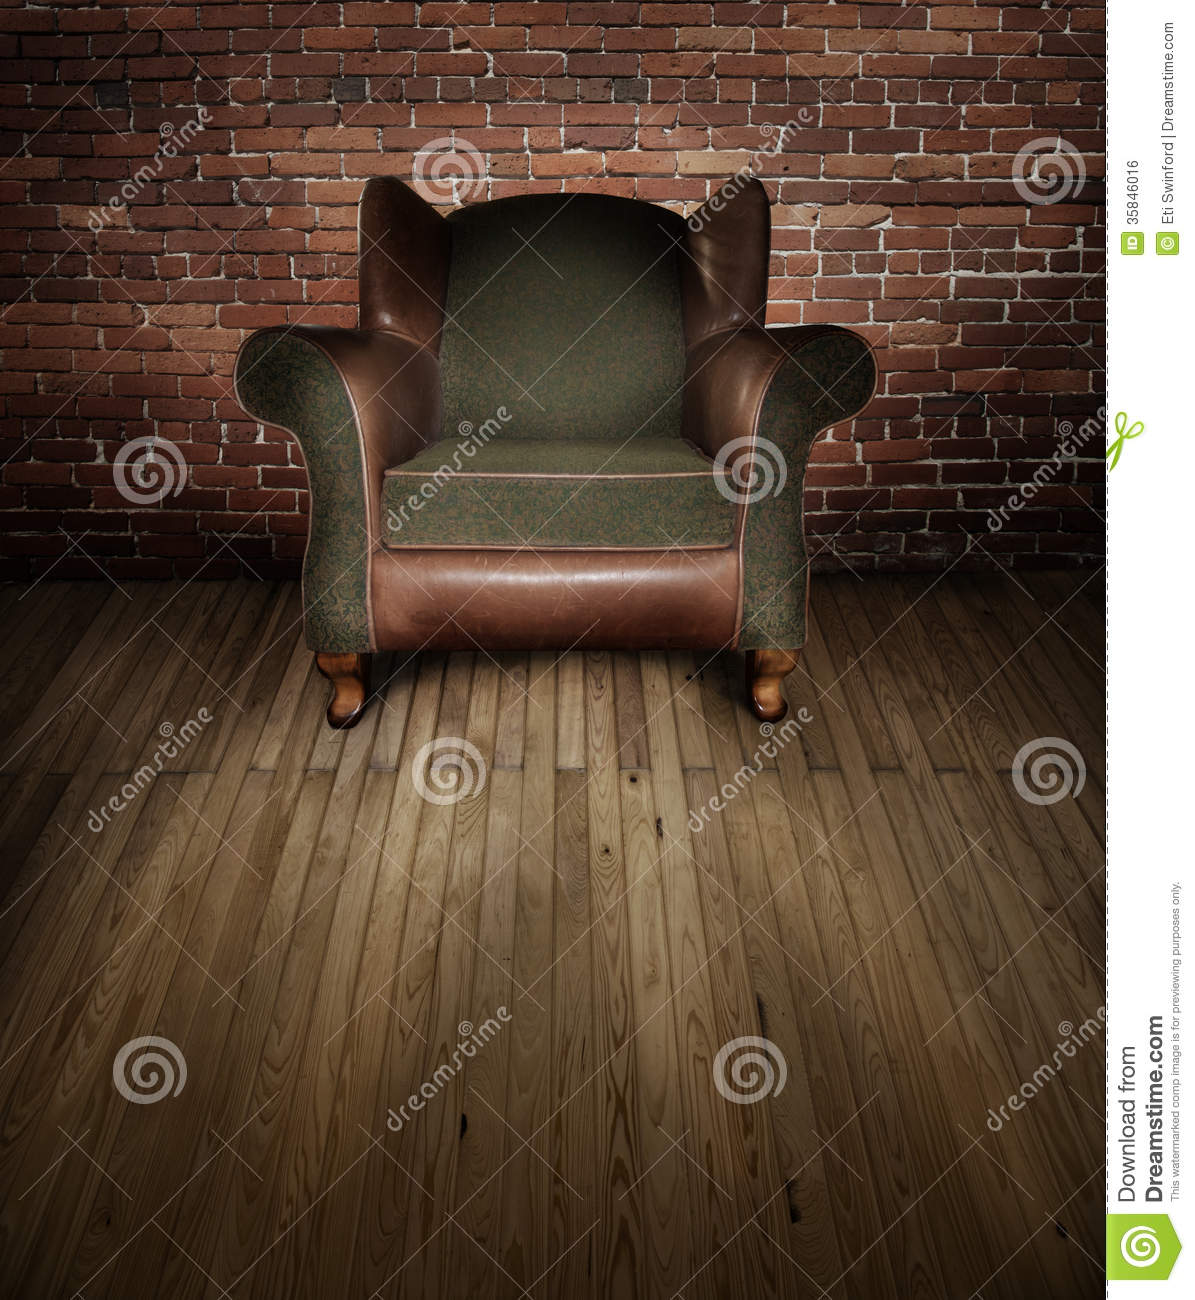 A Leather And Fabric Chair Backlit On A Wooden Stage With Red Brick  Backdrop. Concept For Interview.